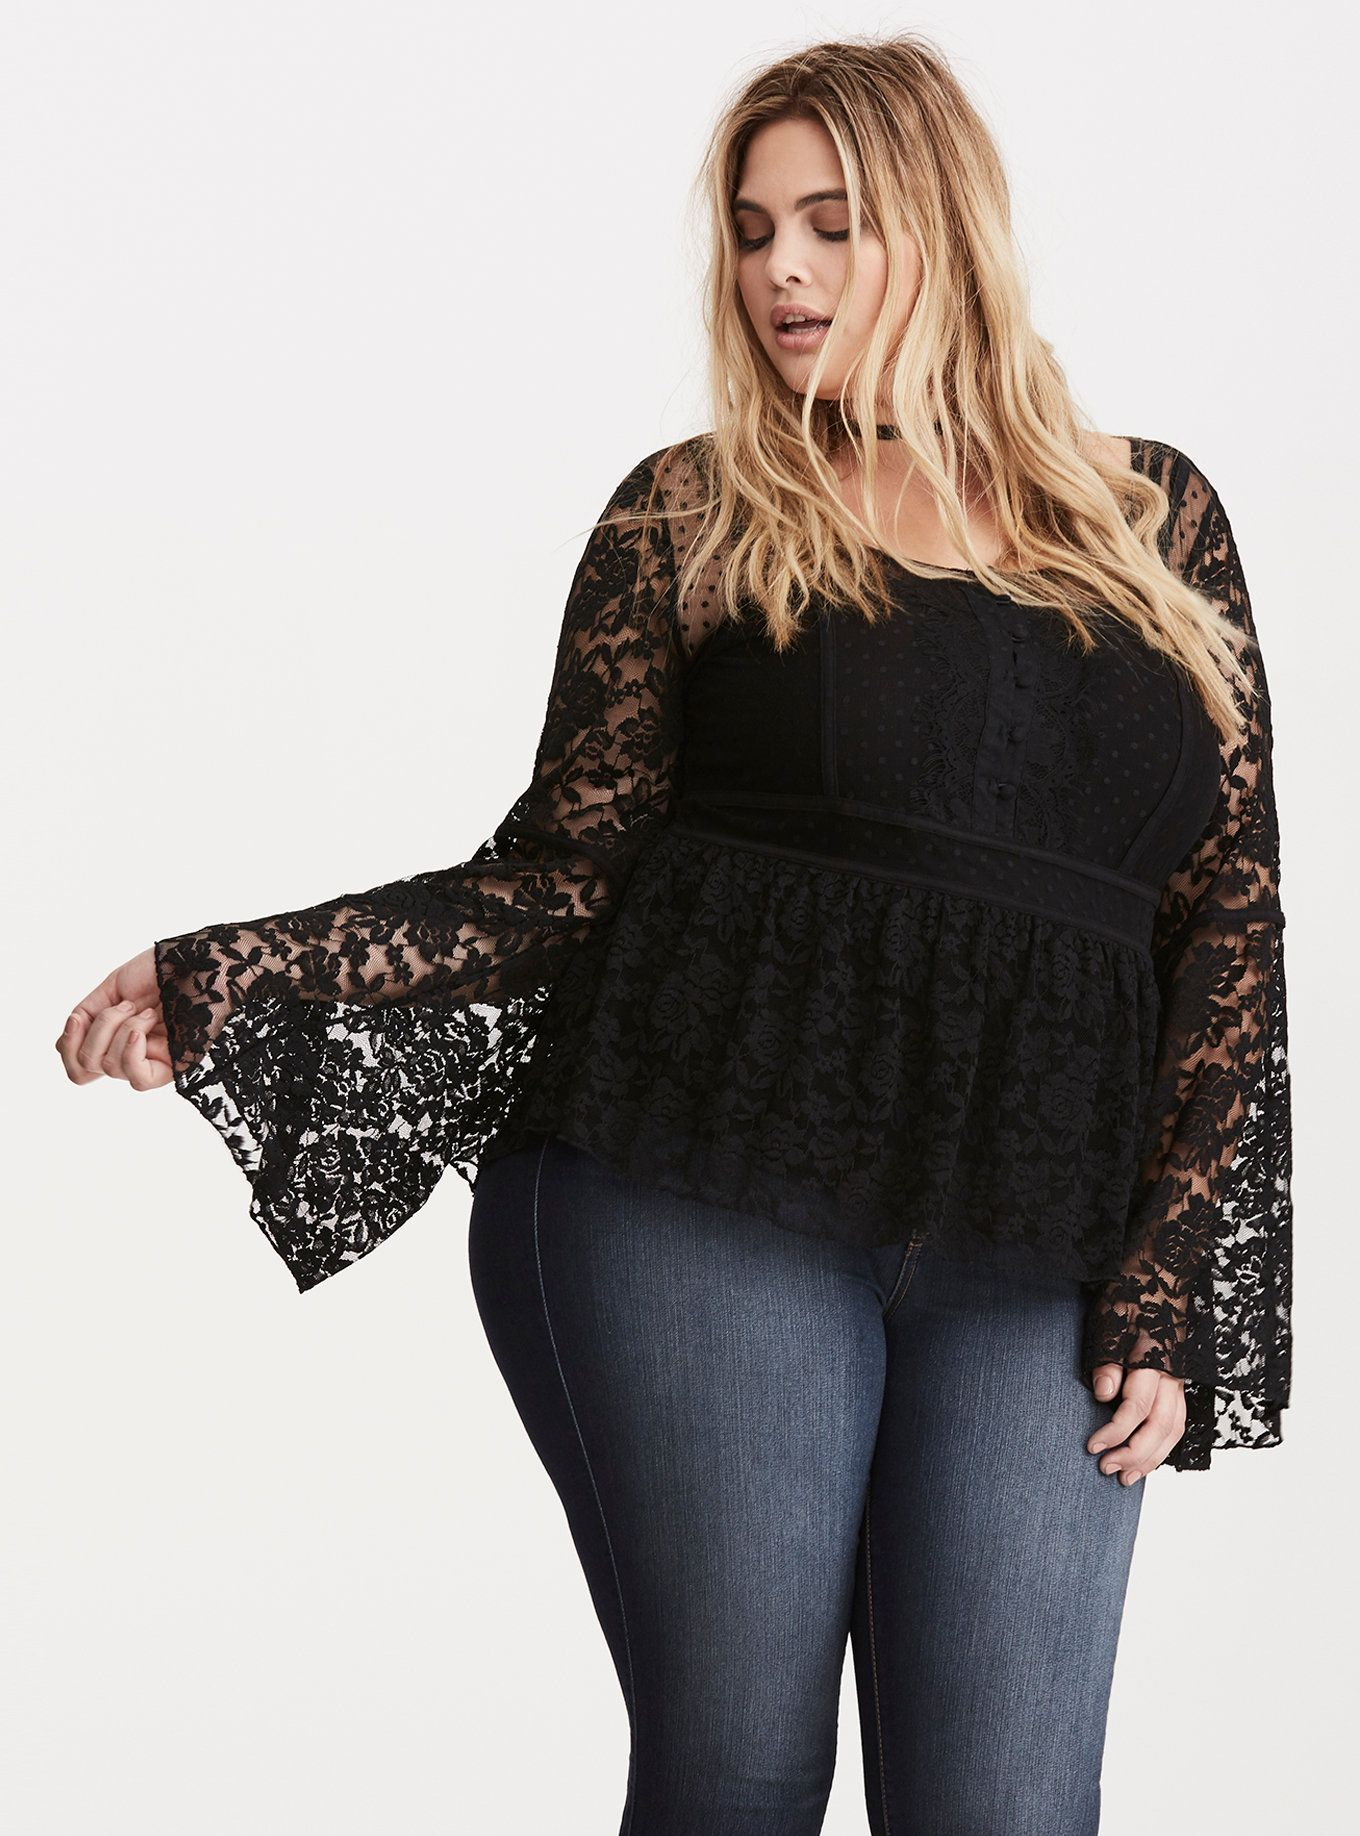 eb9e3a04cffbf5 Dot Mesh Lace Peasant Top | Corporate Goth Glam Pin-Up Look | Tops ...